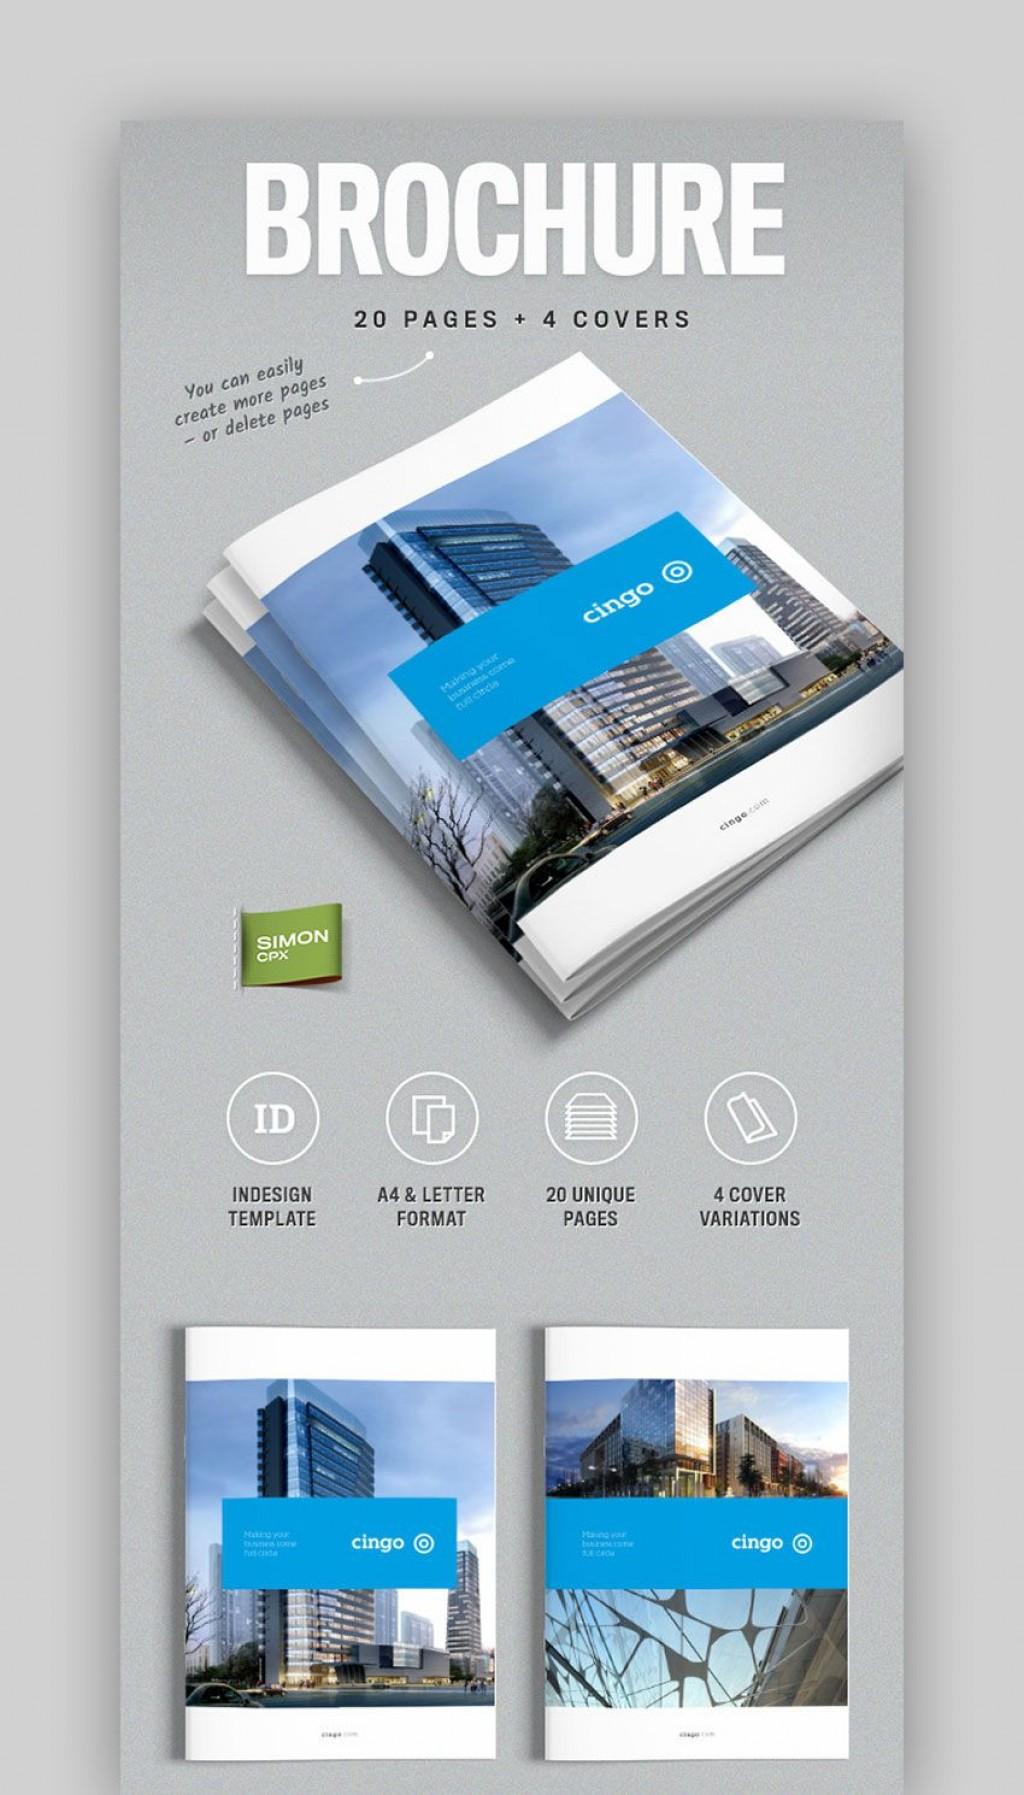 004 Unbelievable Indesign A4 Brochure Template Free Download High Resolution Large